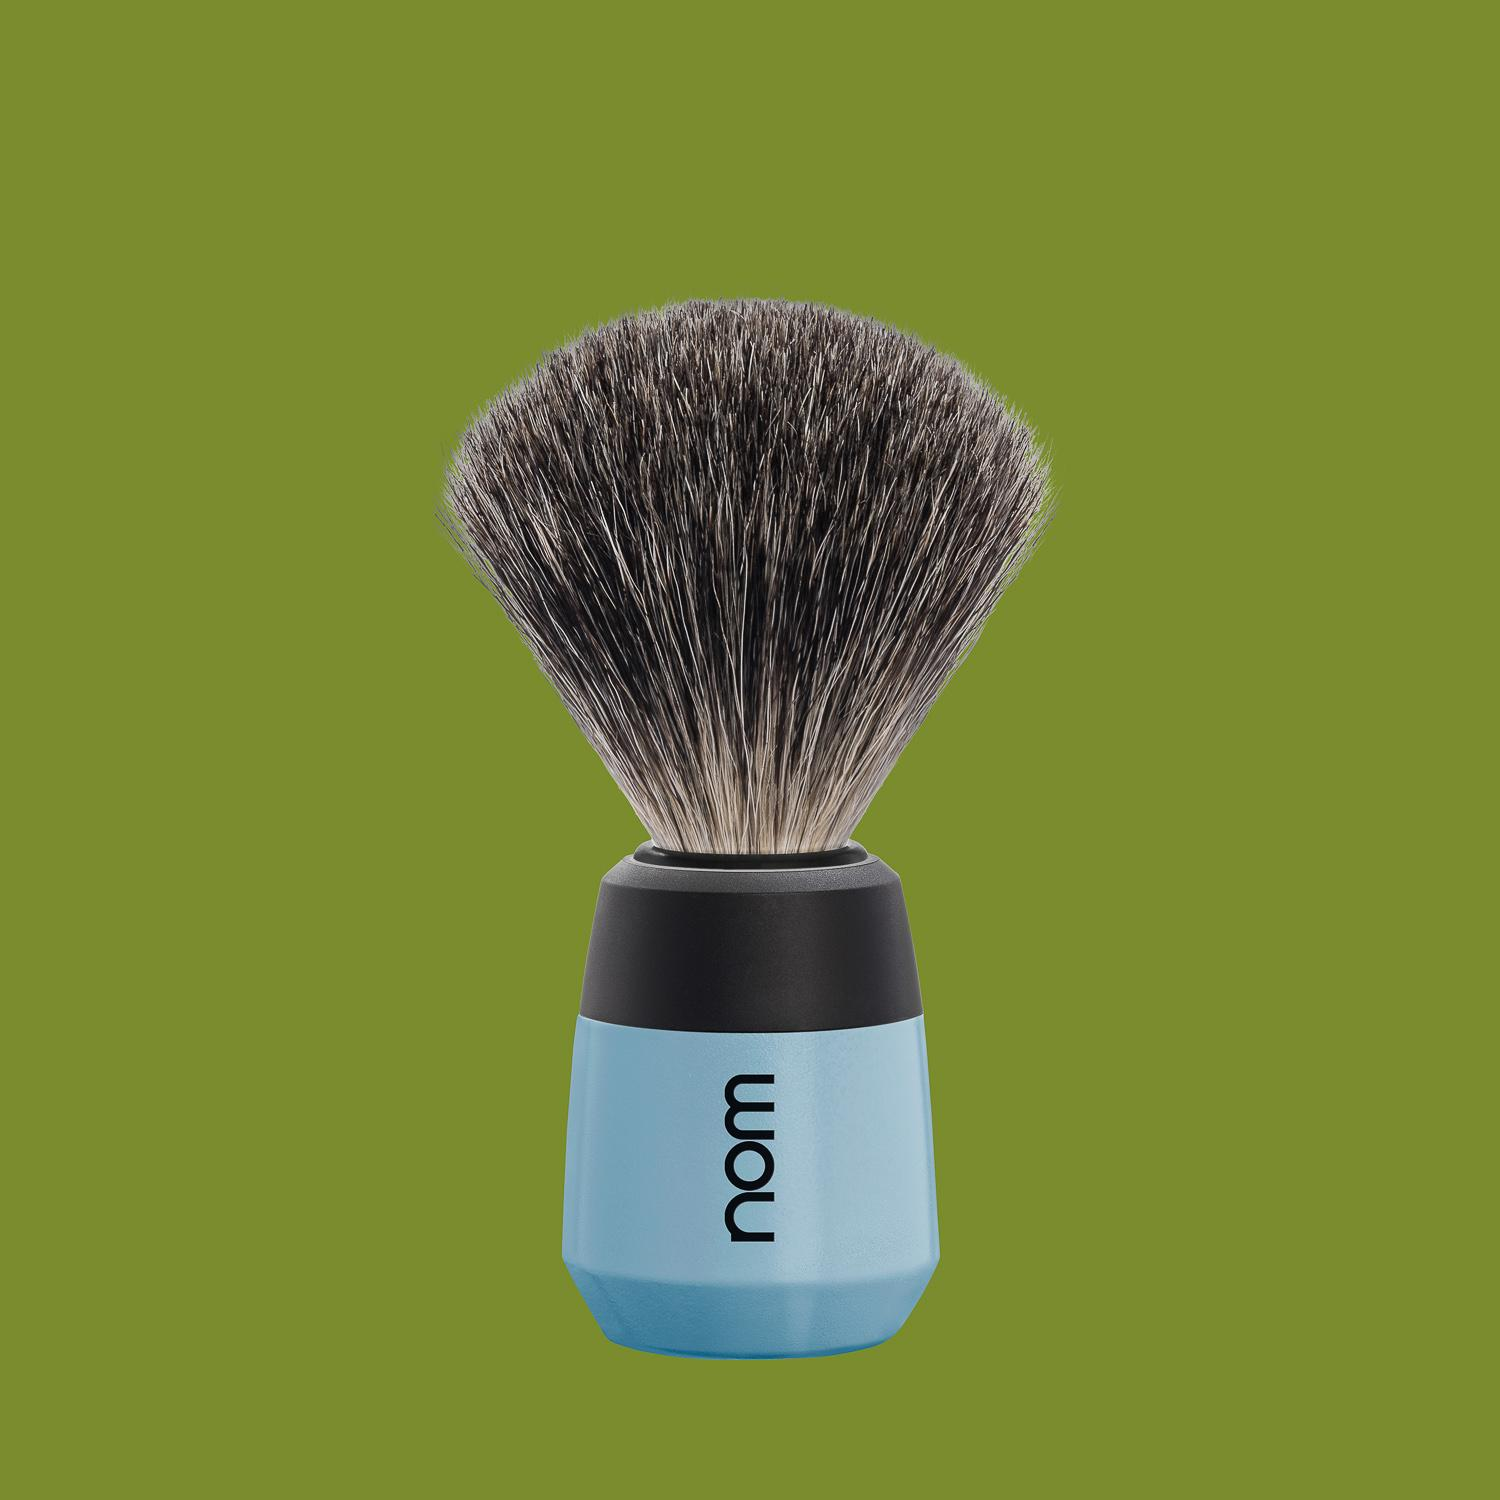 nom MAX, Fjord, Badger Shaving Brush